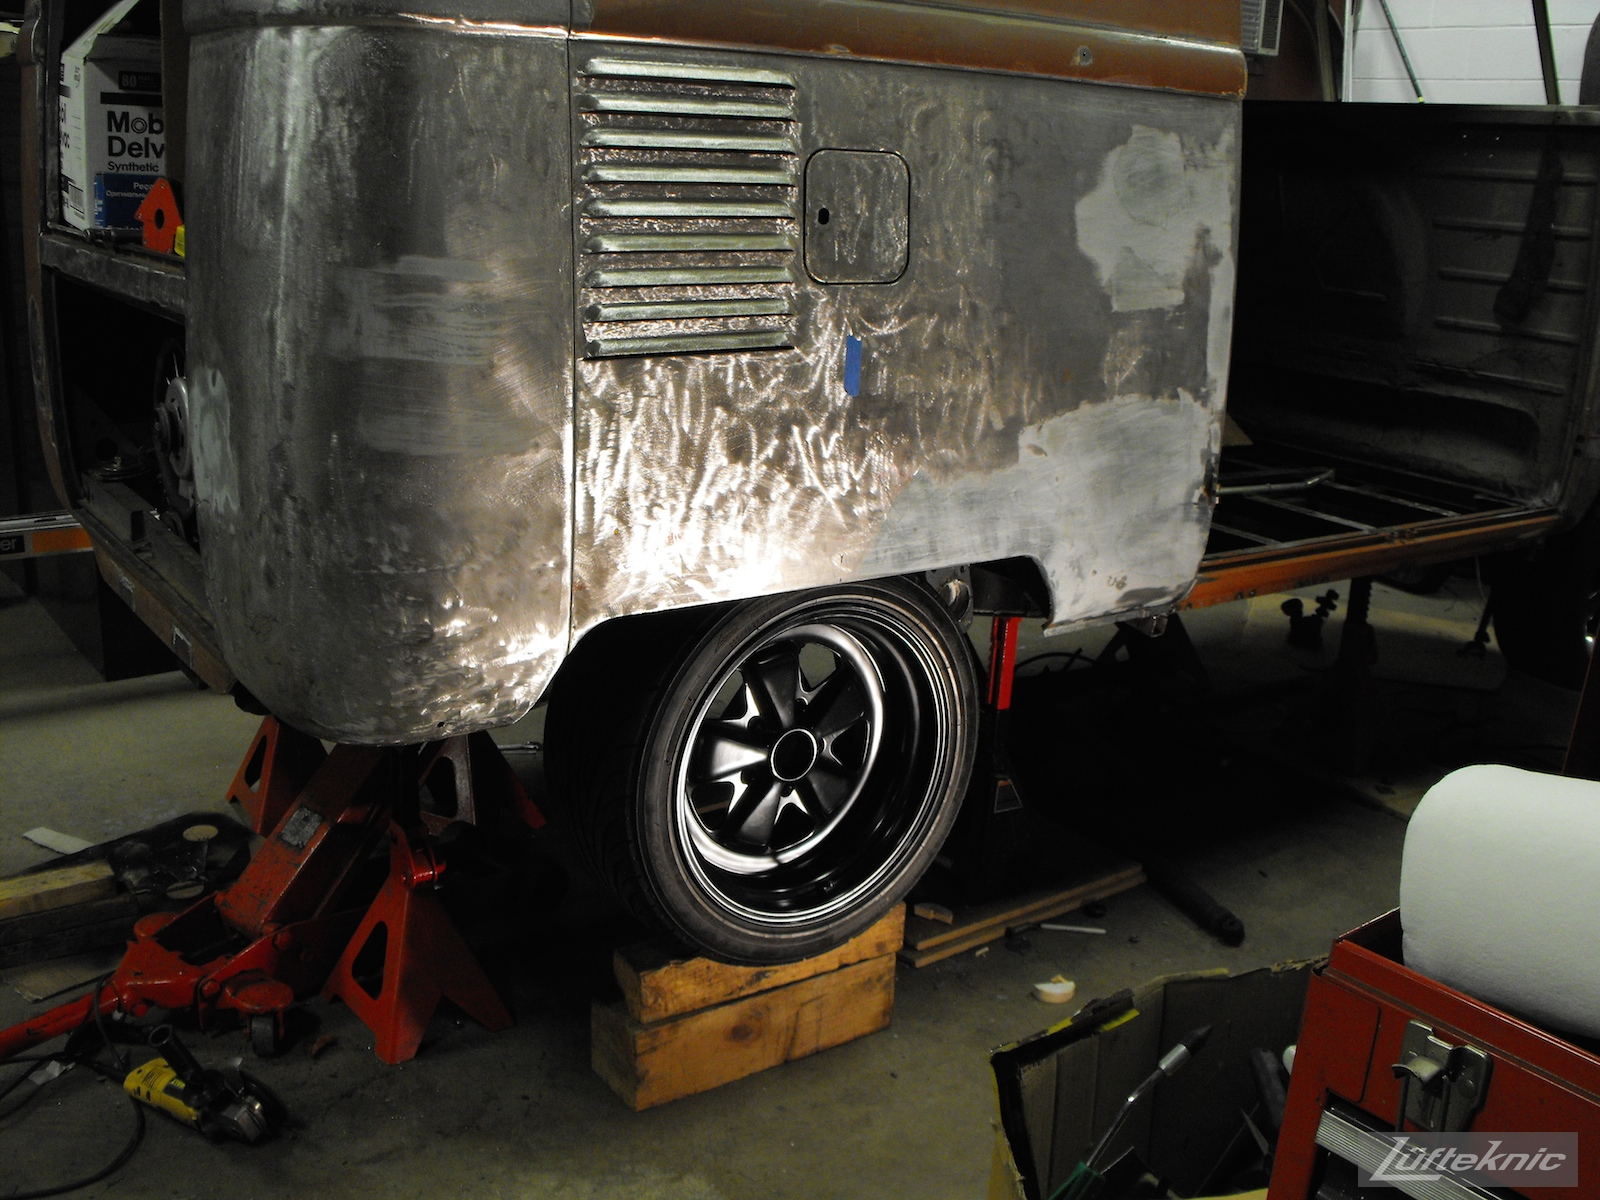 1956 Volkswagen double panel Transporter Porsche Bus wheel test fit.